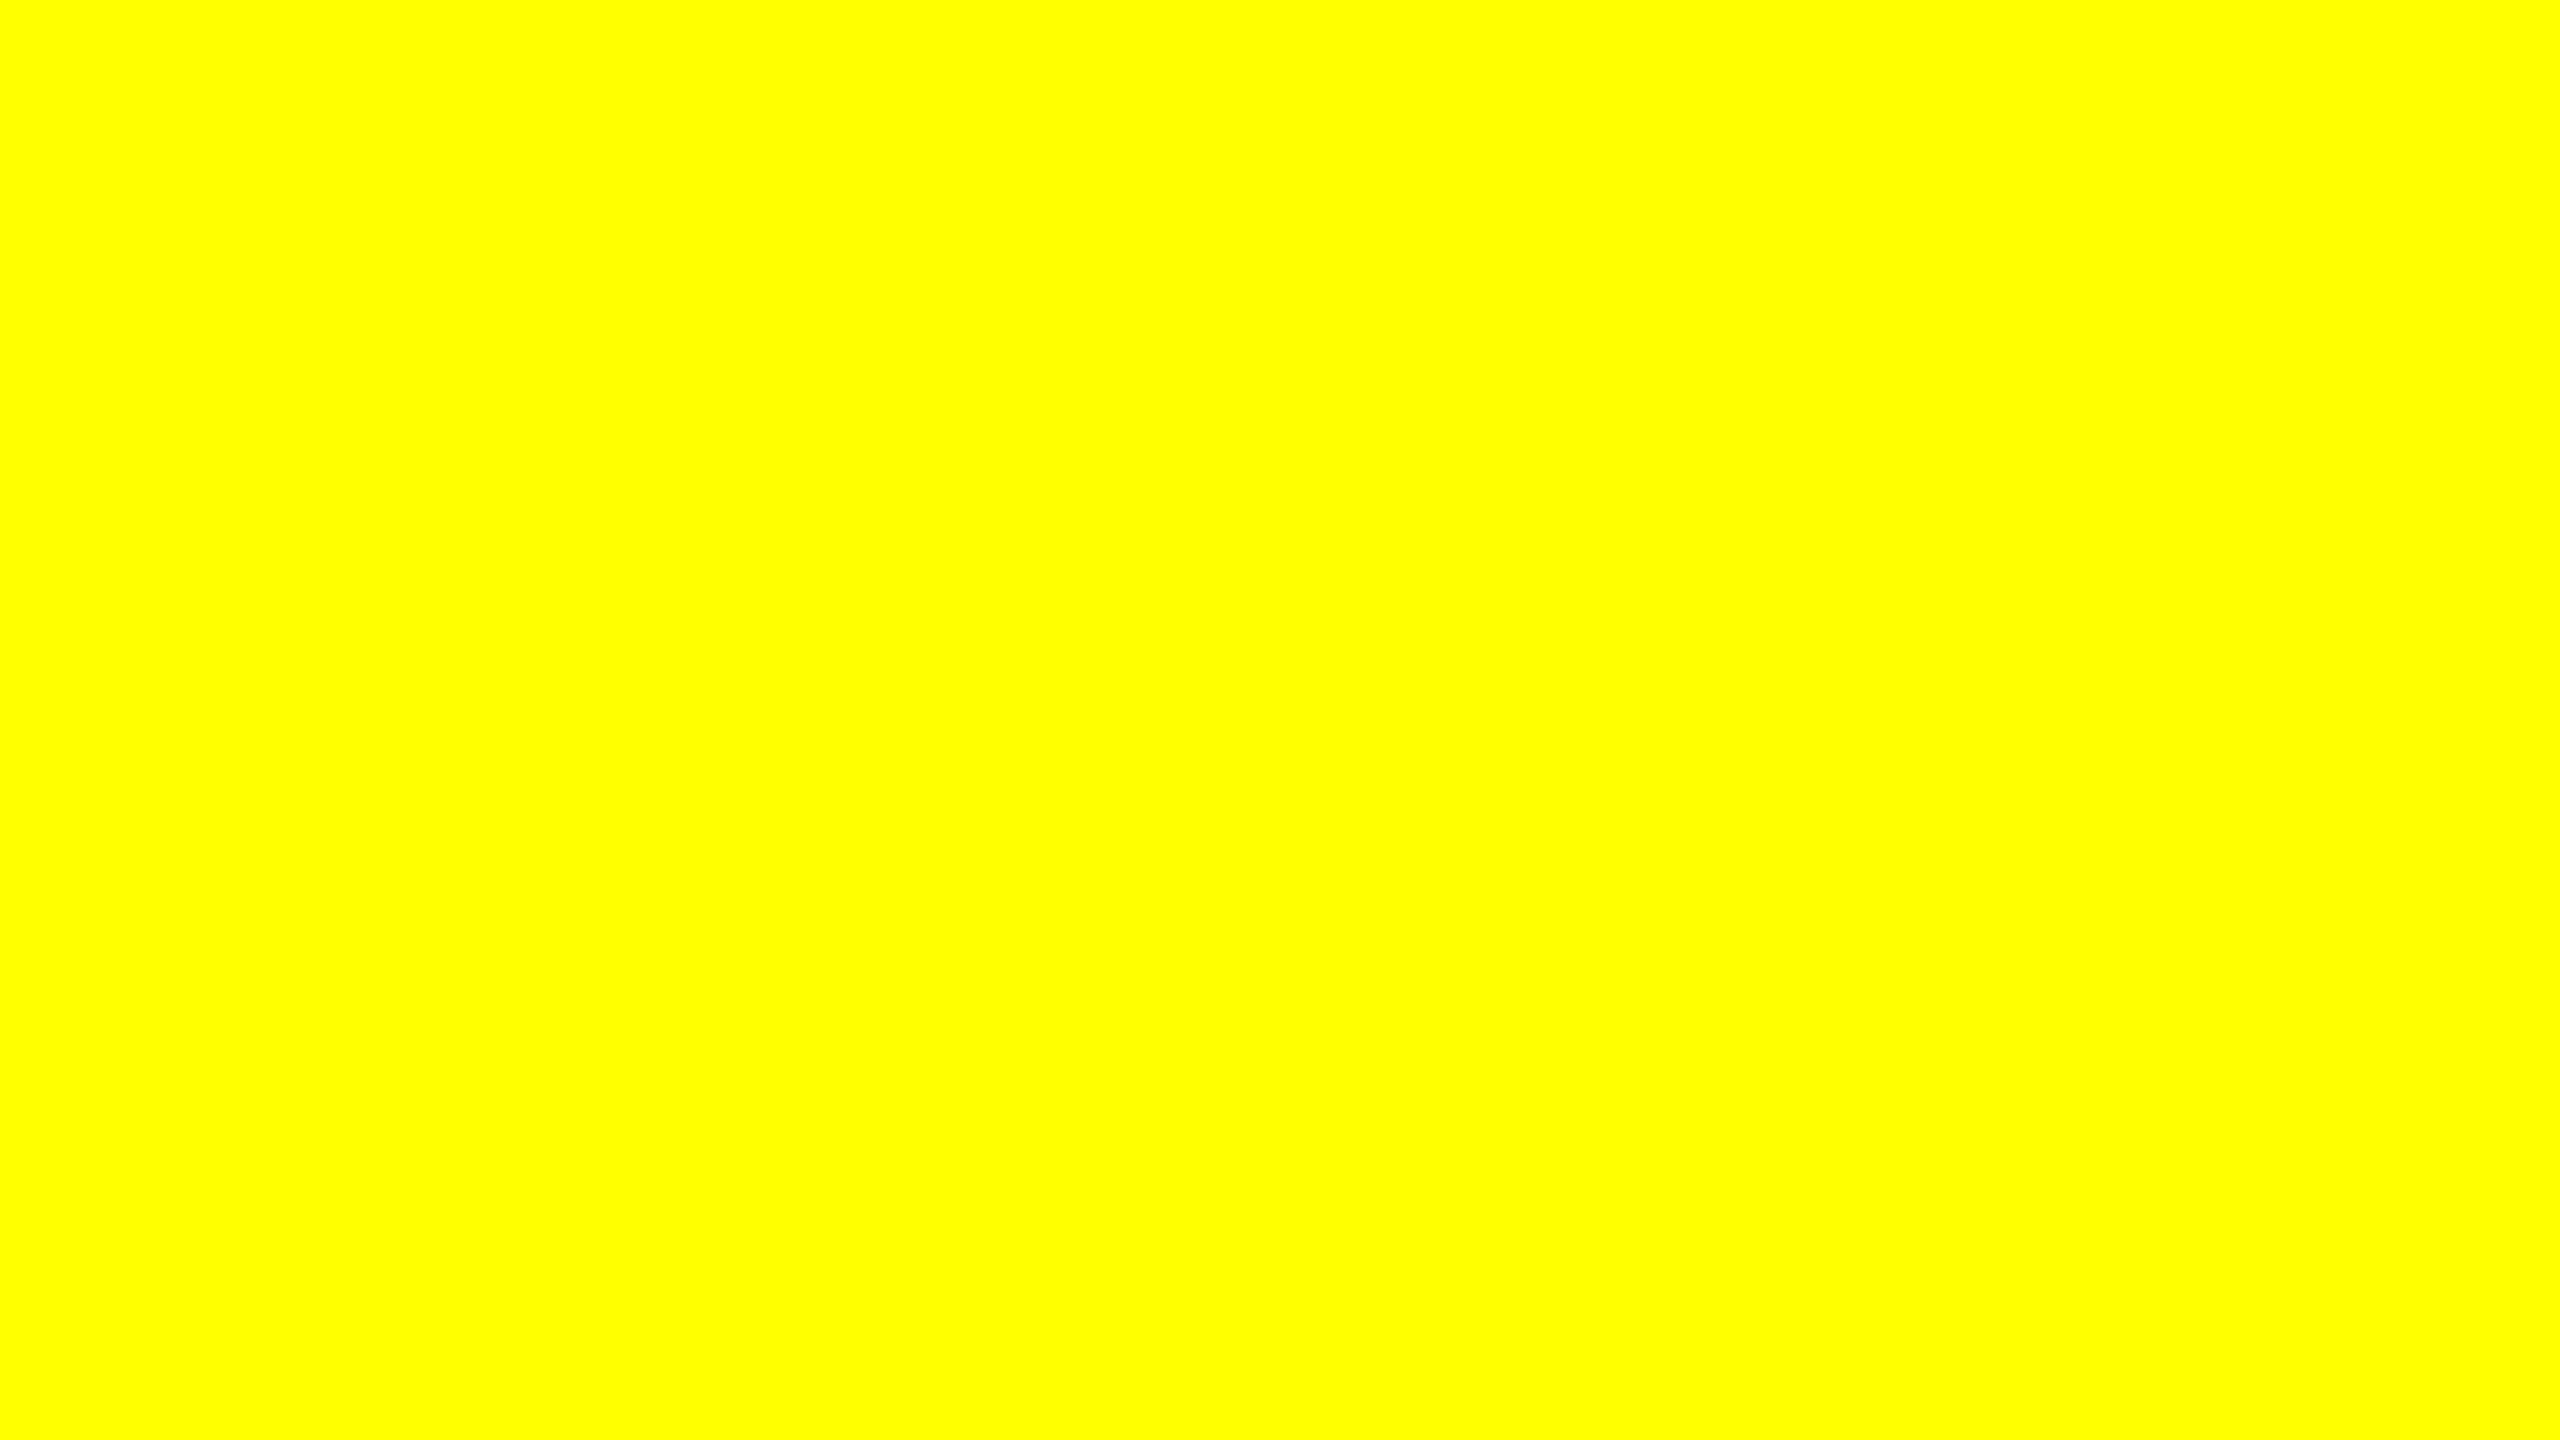 Color Yellow Background 2560x1440 yellow solid color 2560x1440